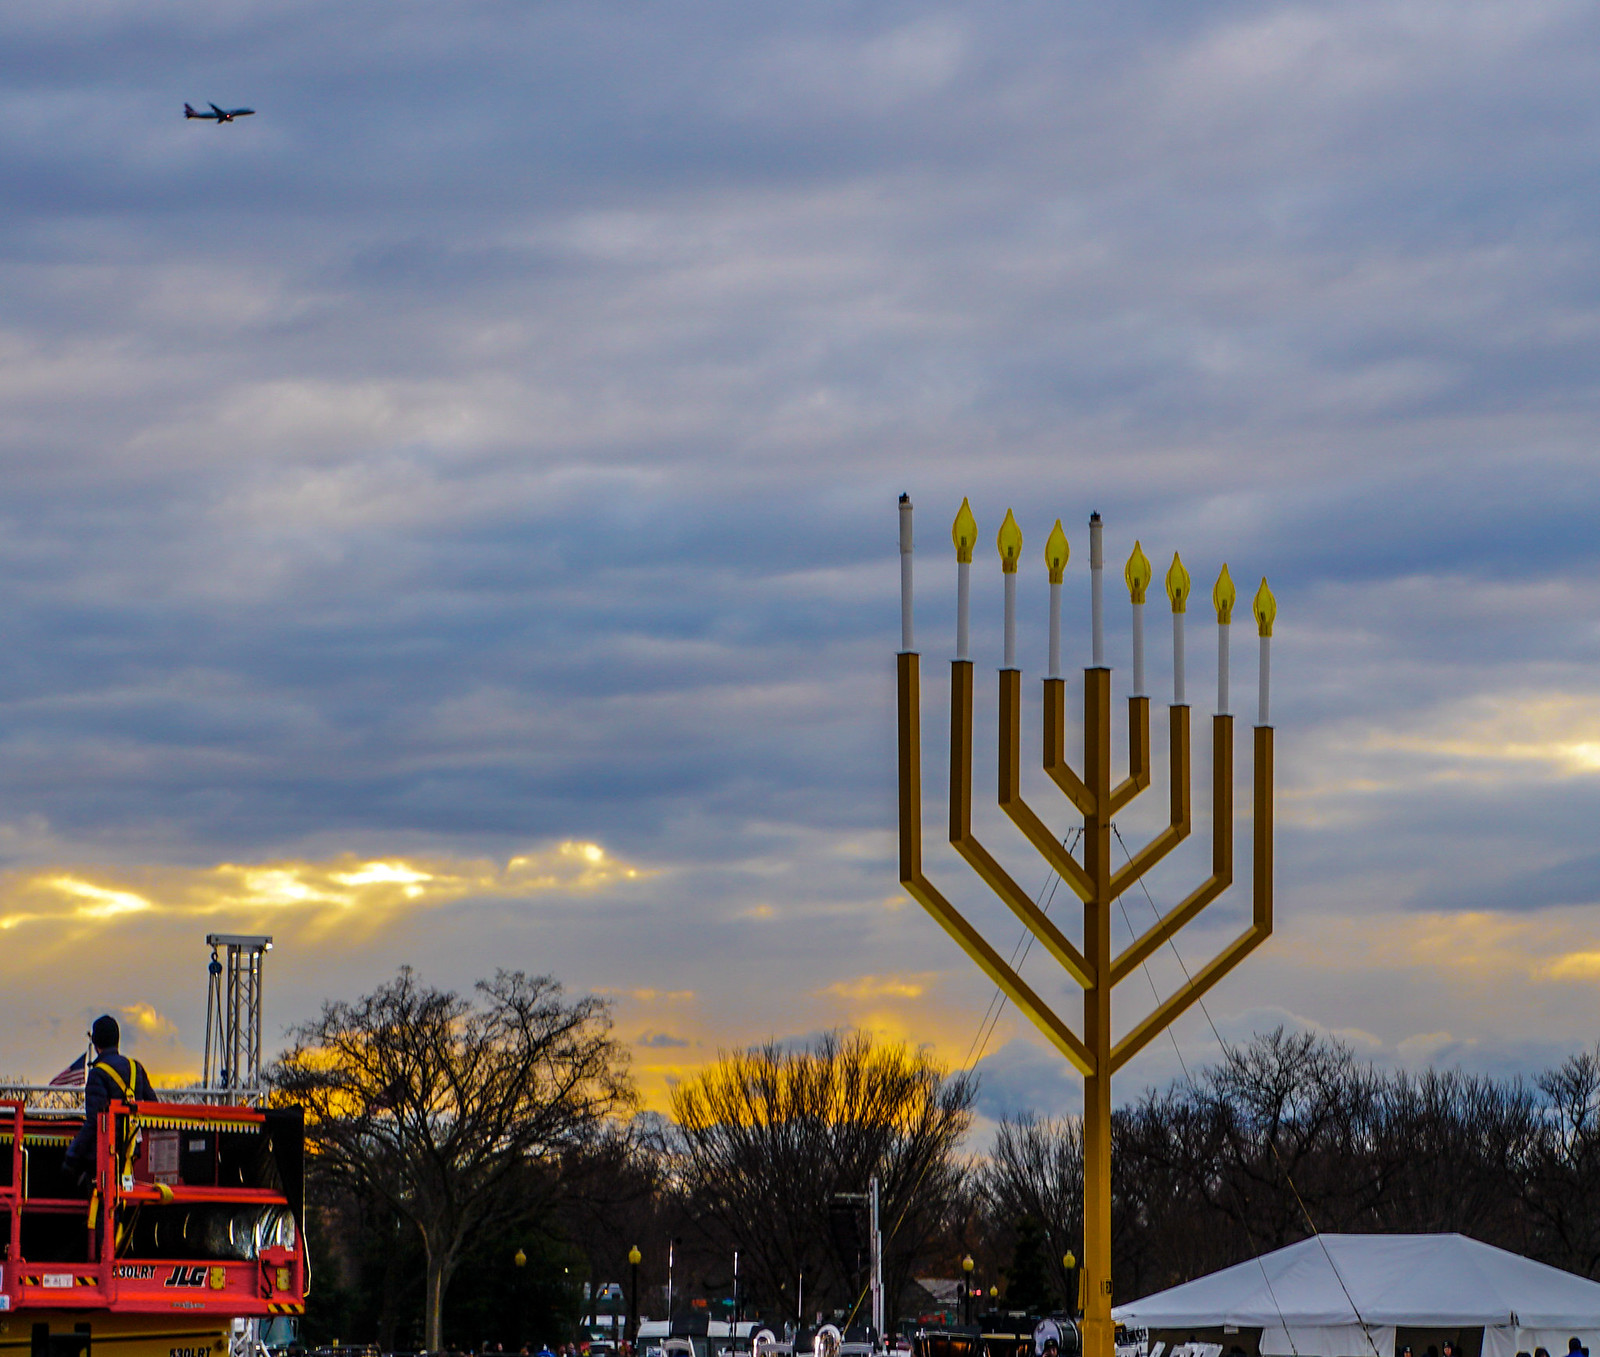 2017.12.12 National Menorah, Washington, DC USA 1364